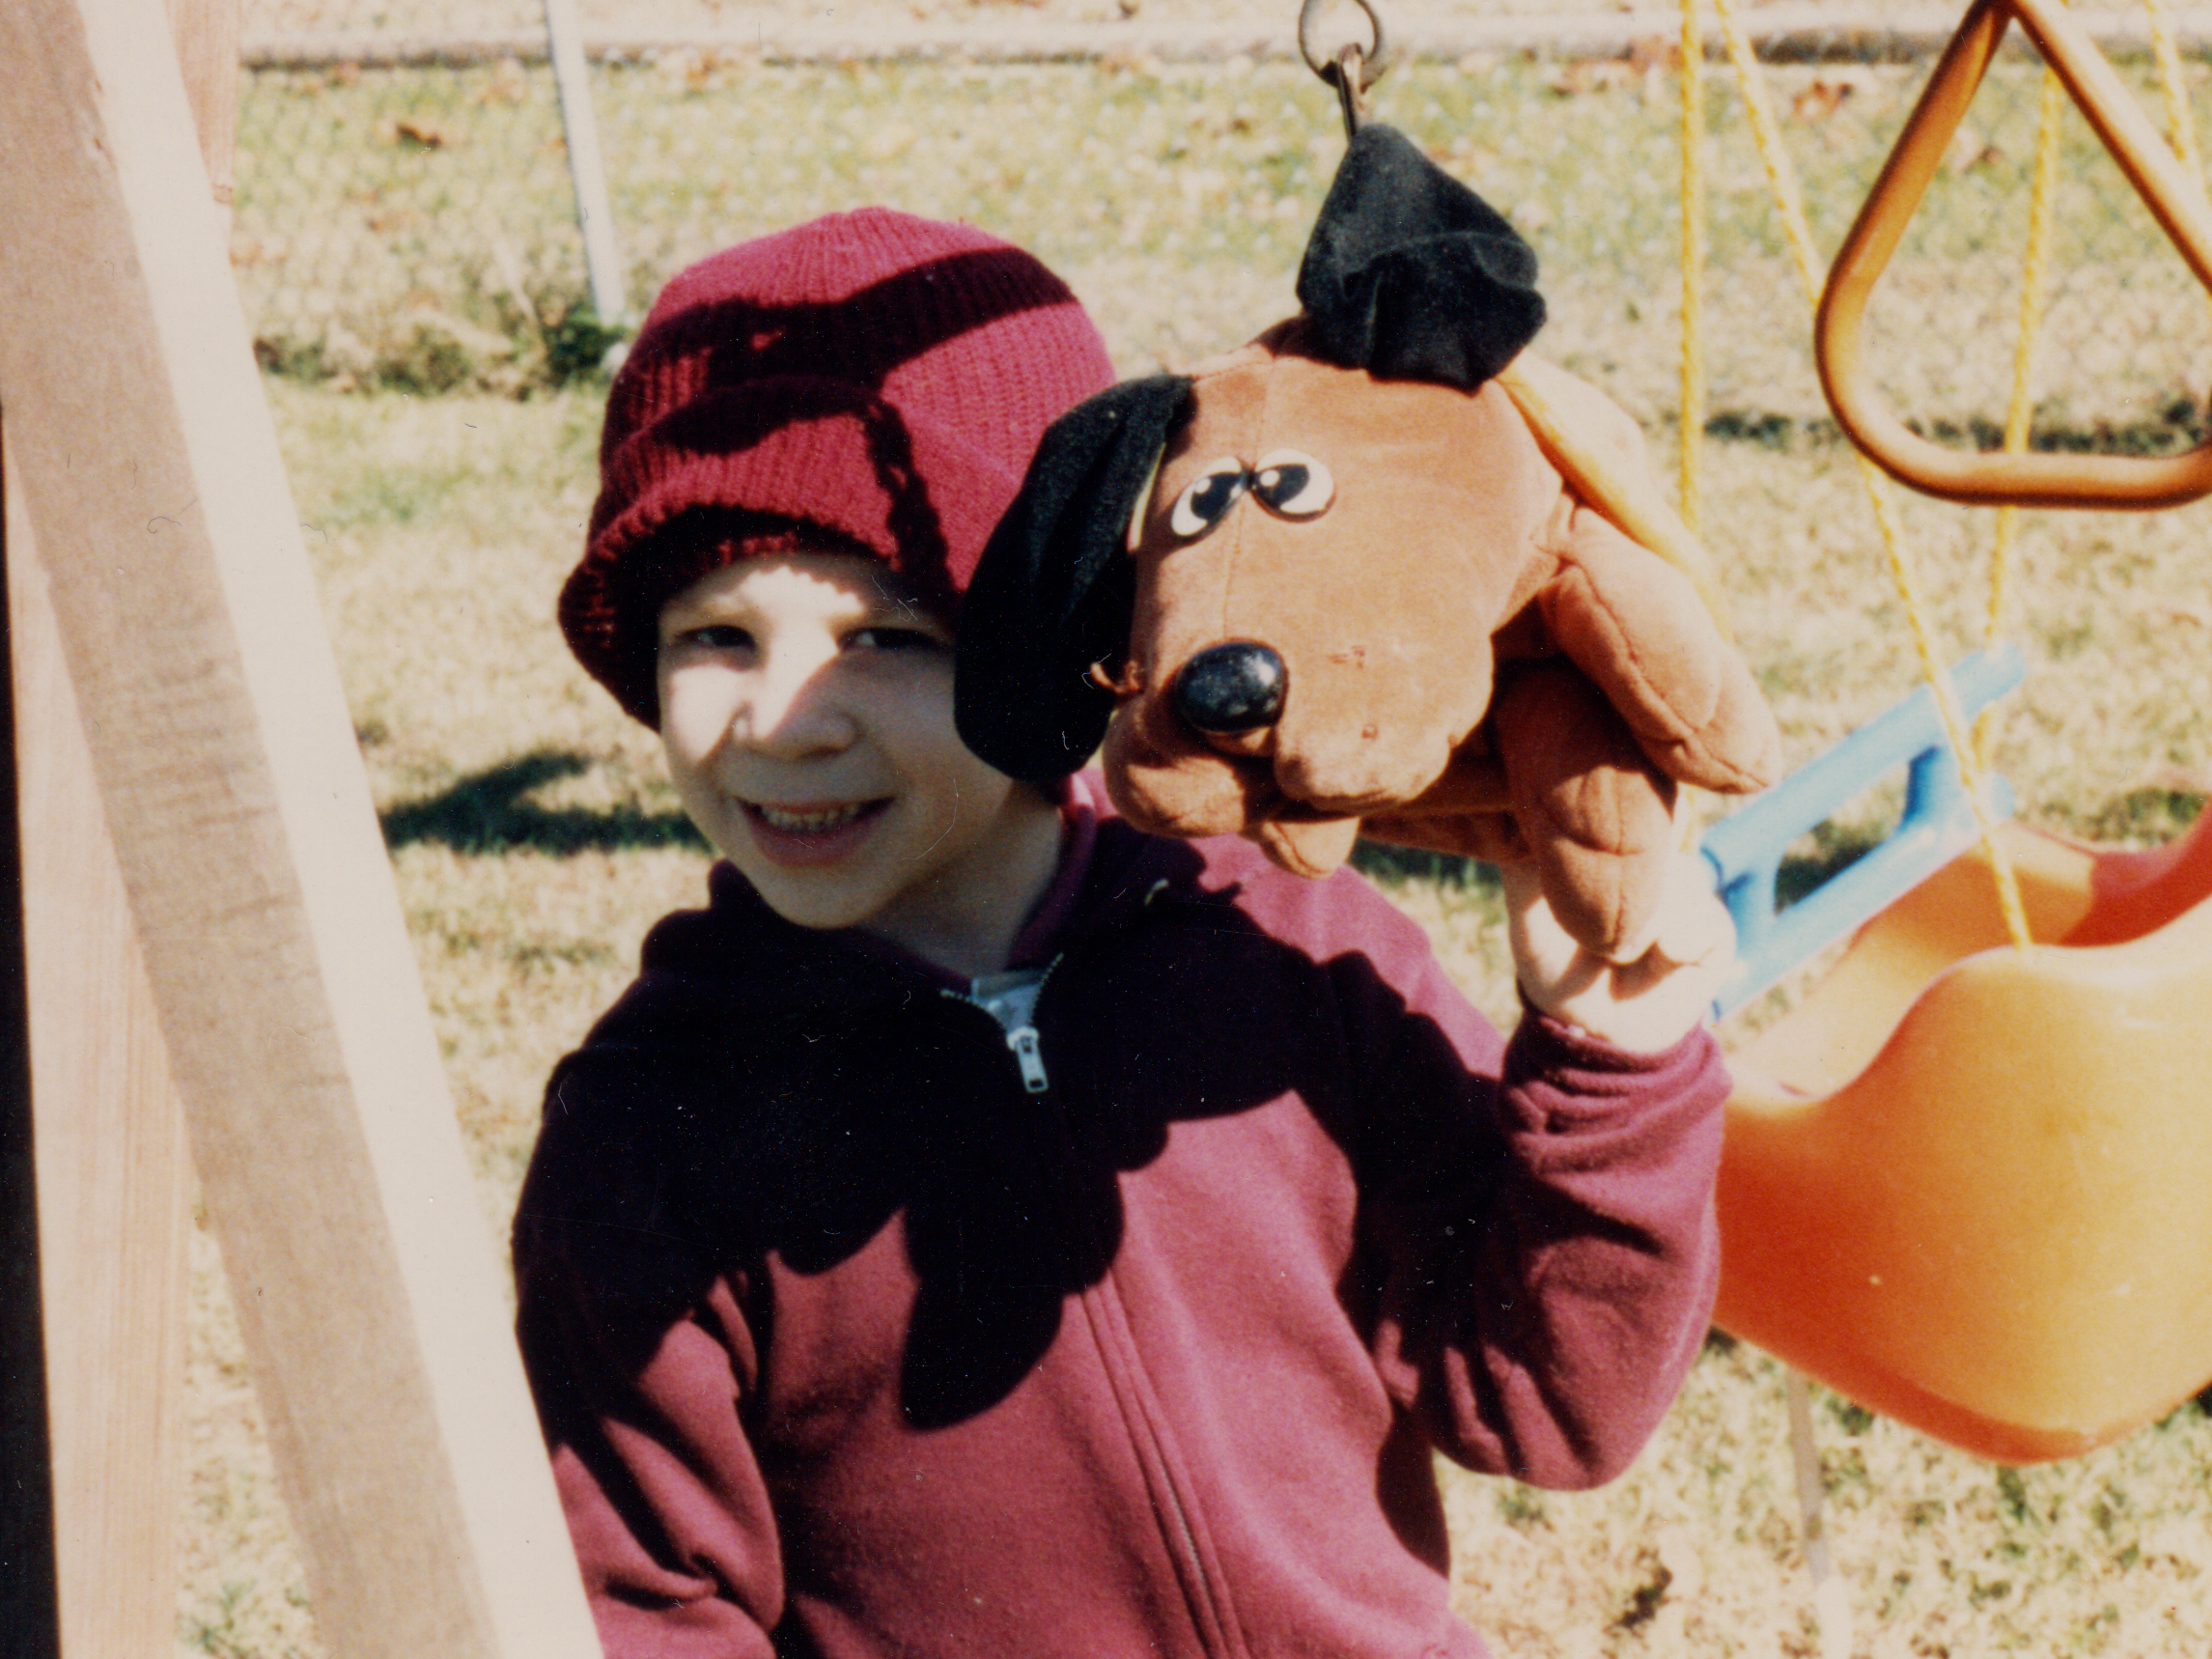 File:Child with Pound Puppies toy.png - Wikimedia Commons